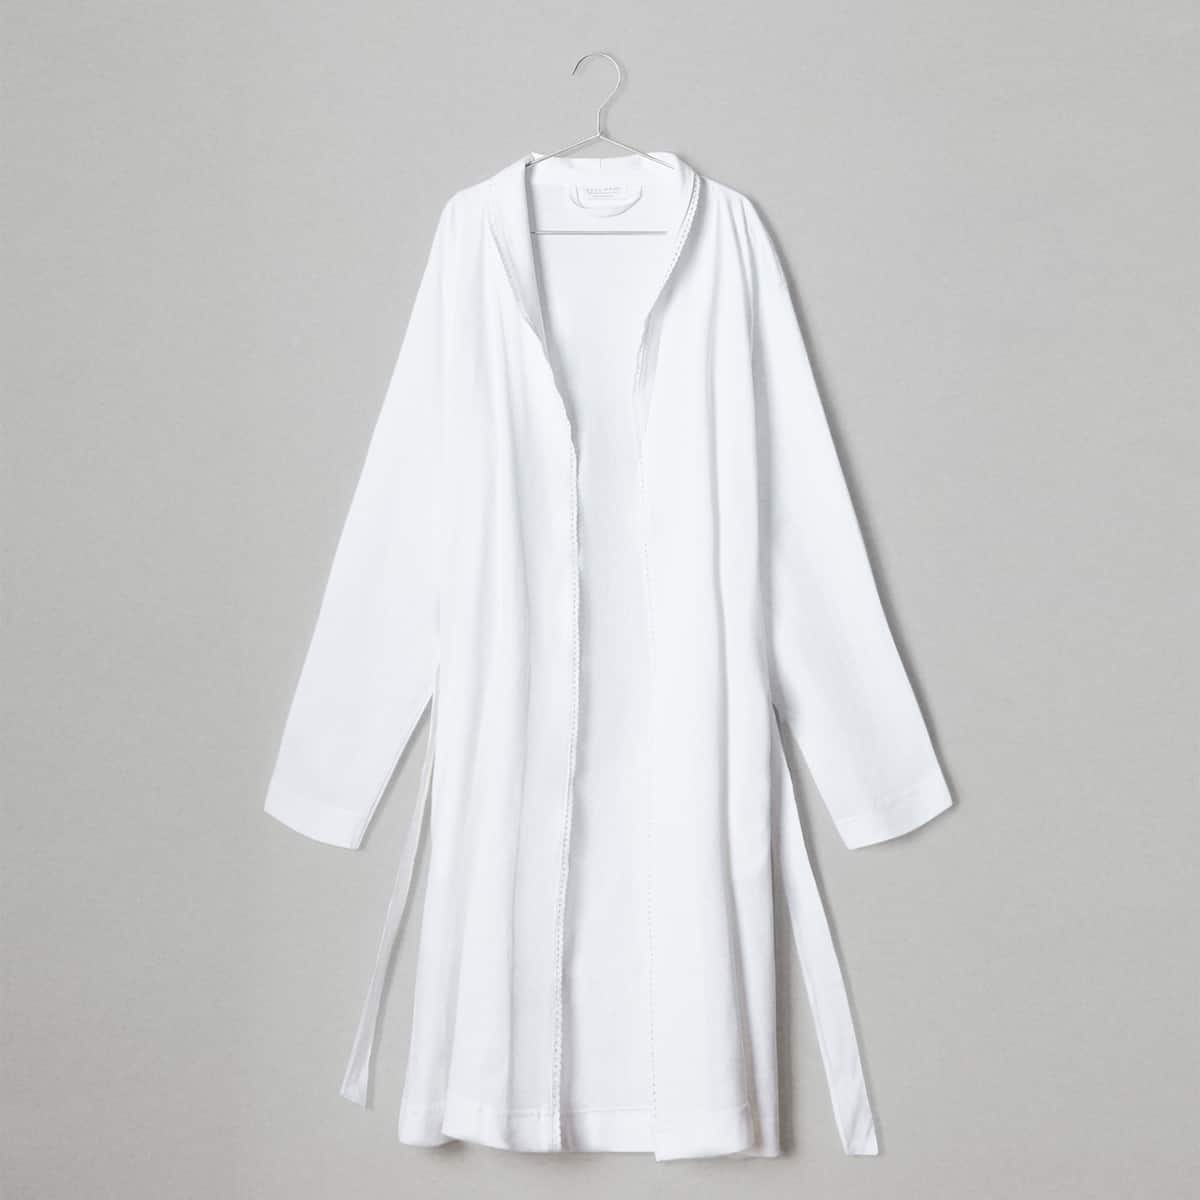 COTTON DRESSING GOWN WITH LACE TRIM - DRESSING GOWNS - WOMEN\'S ...